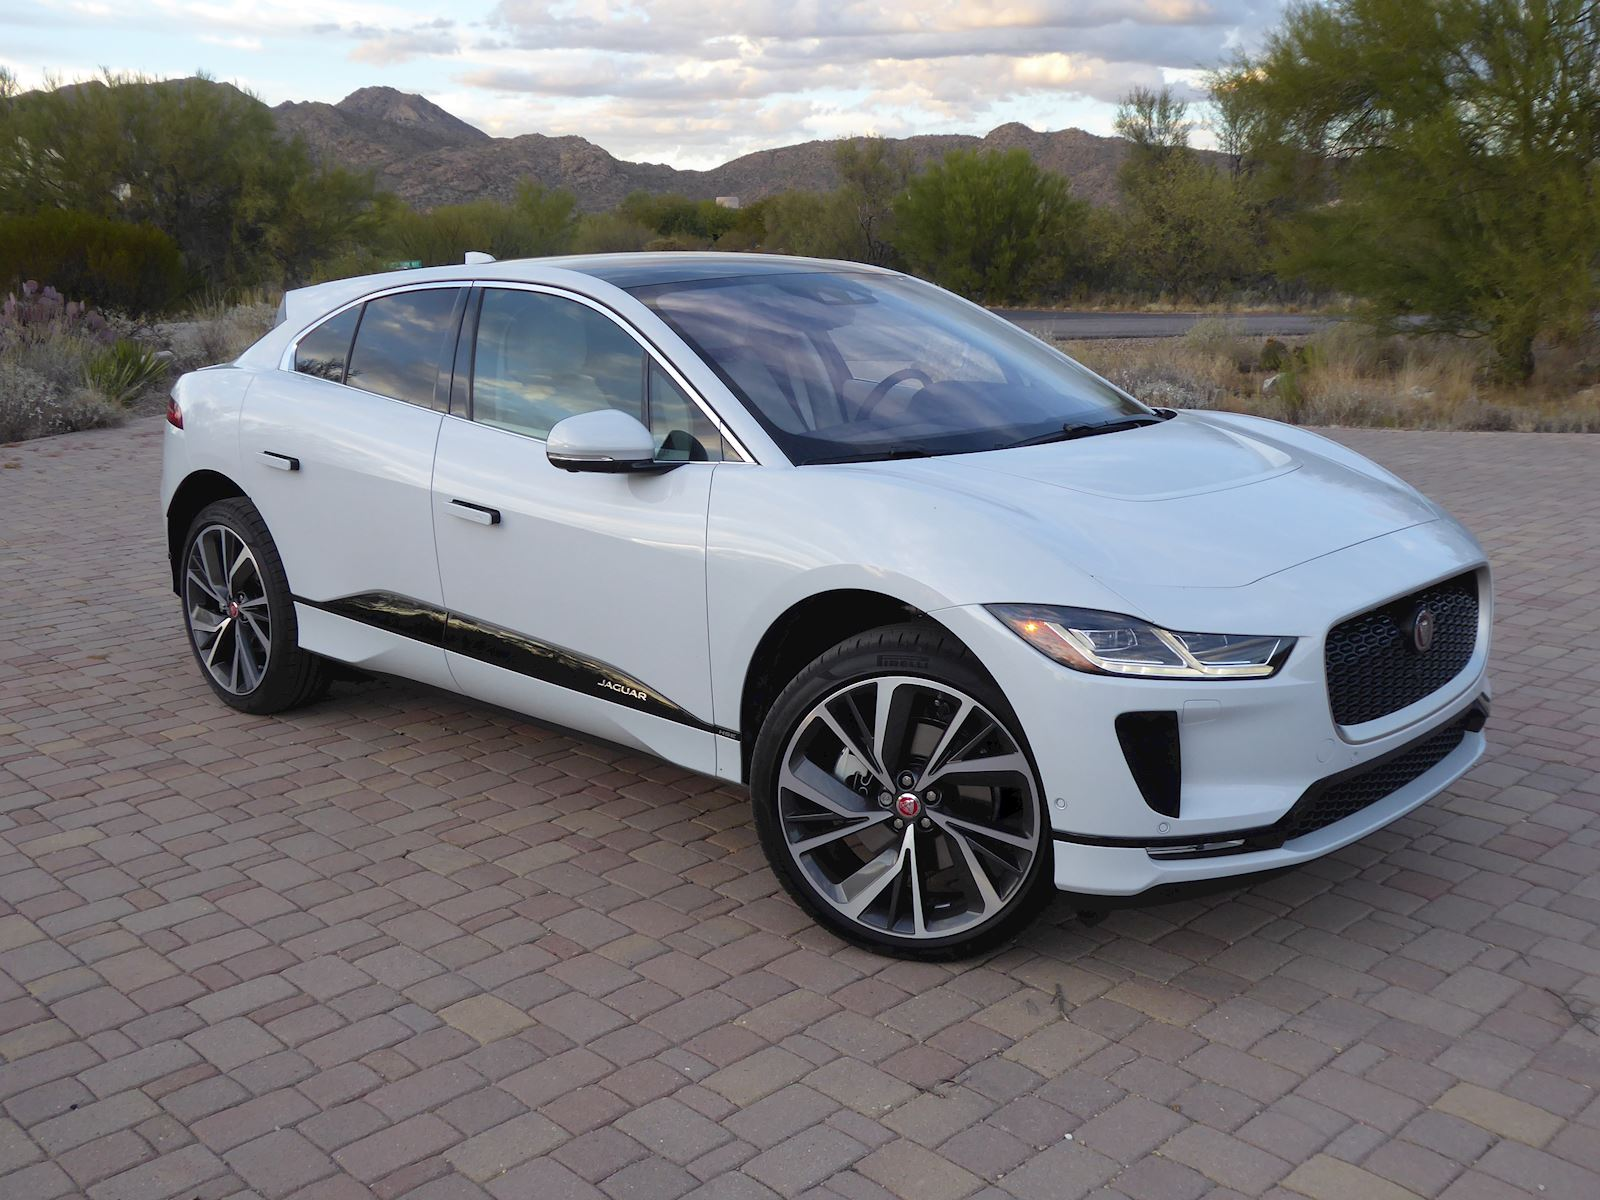 2020 Jaguar I-Pace front and side view exterior